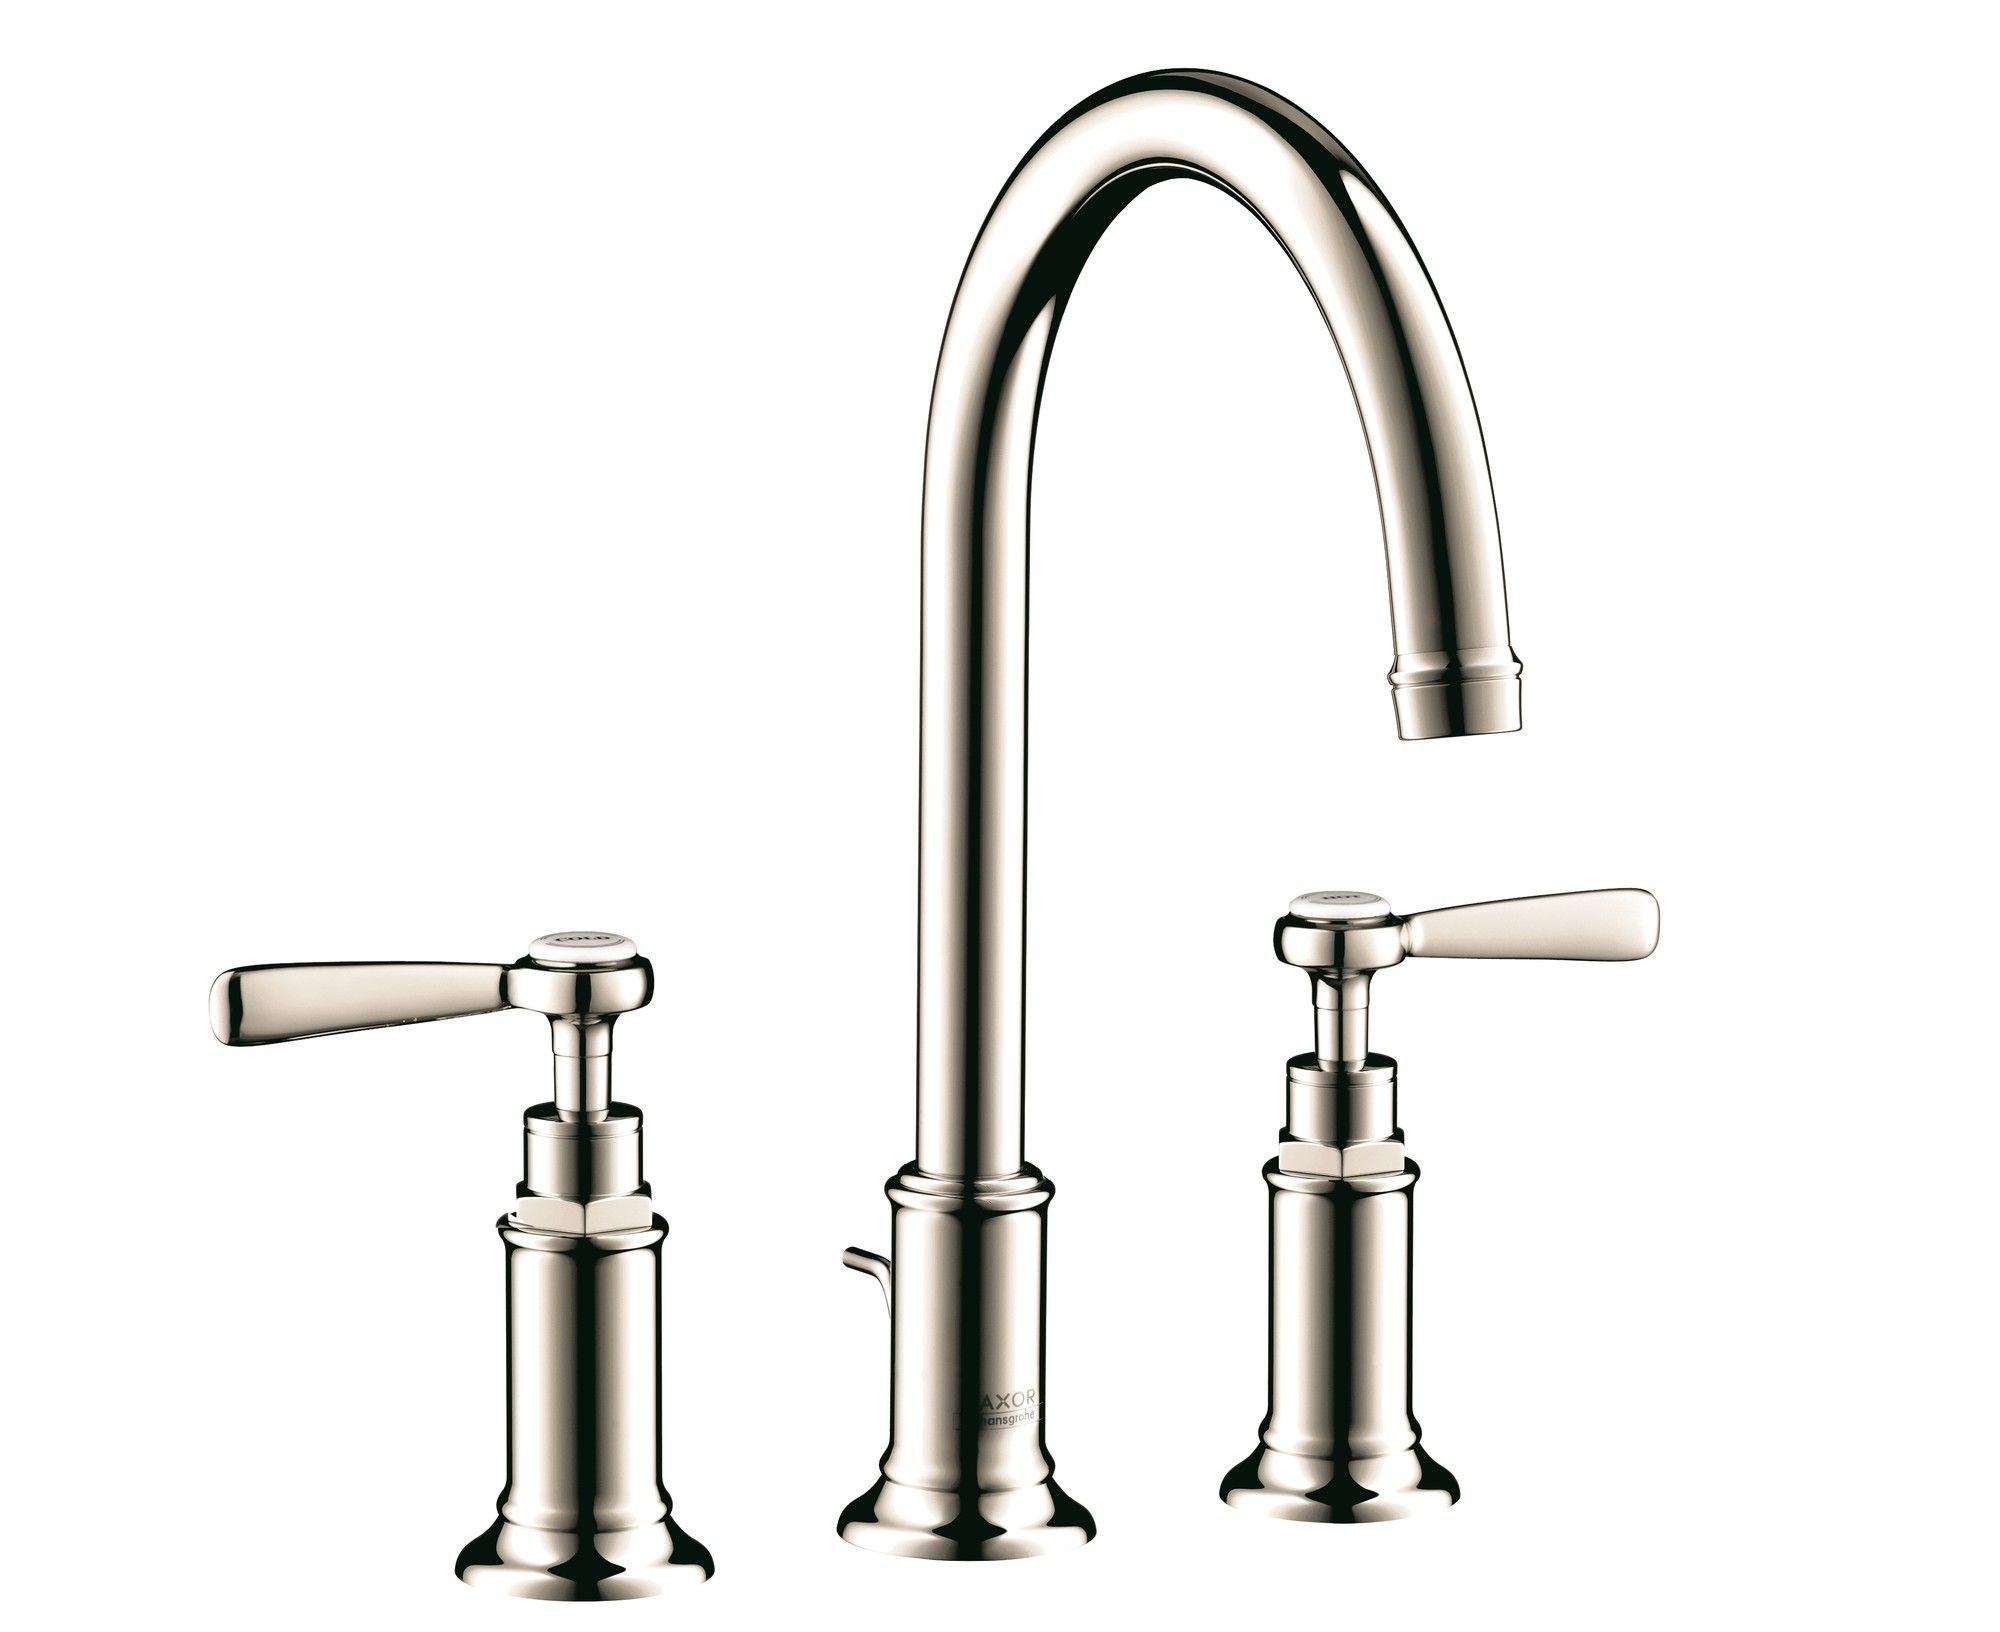 Axor Montreux Double Handle Widespread Bathroom Faucet   Products ...